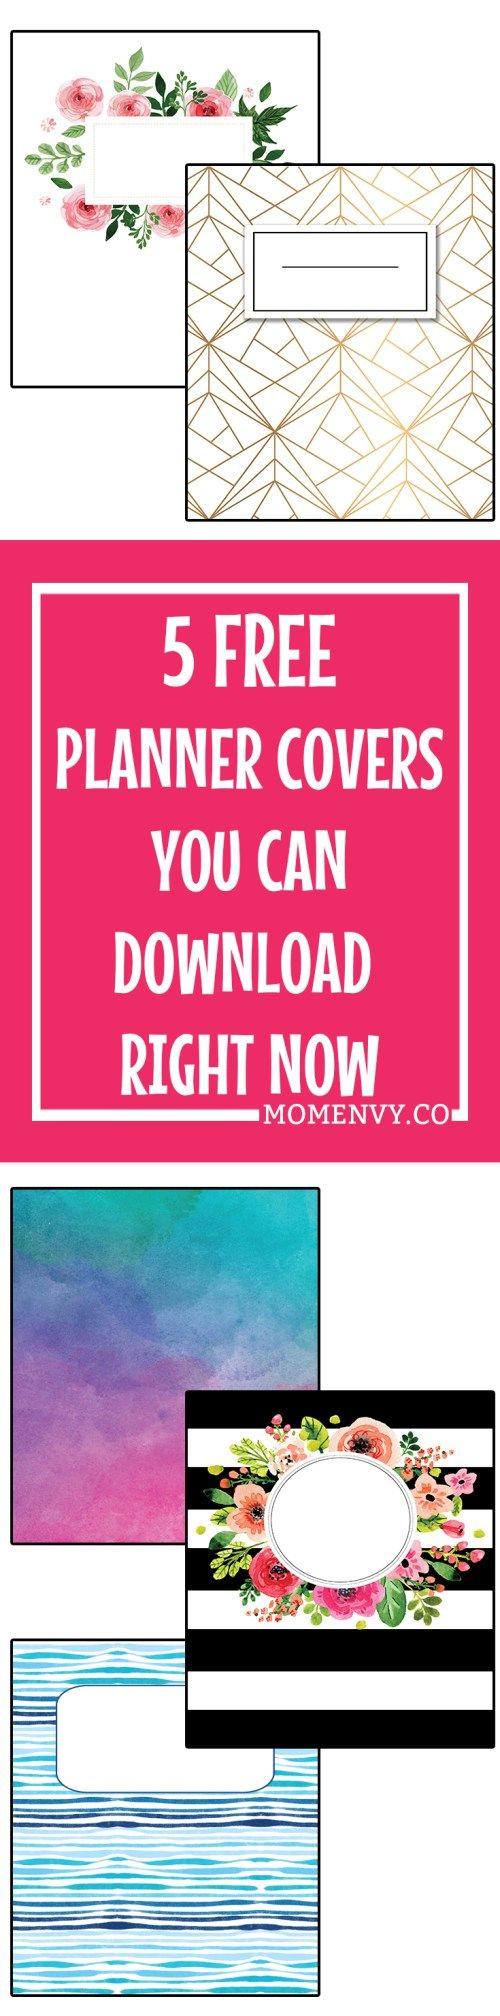 Free Family Binder and Planner Covers. Free customization! Download 5 free planner covers in: A5, Happy Planner Classic, and Letter Size. 5 different designs ready to download and print for free. Free Happy Planner accessories, free planner accessories, free family binder cover and printables.